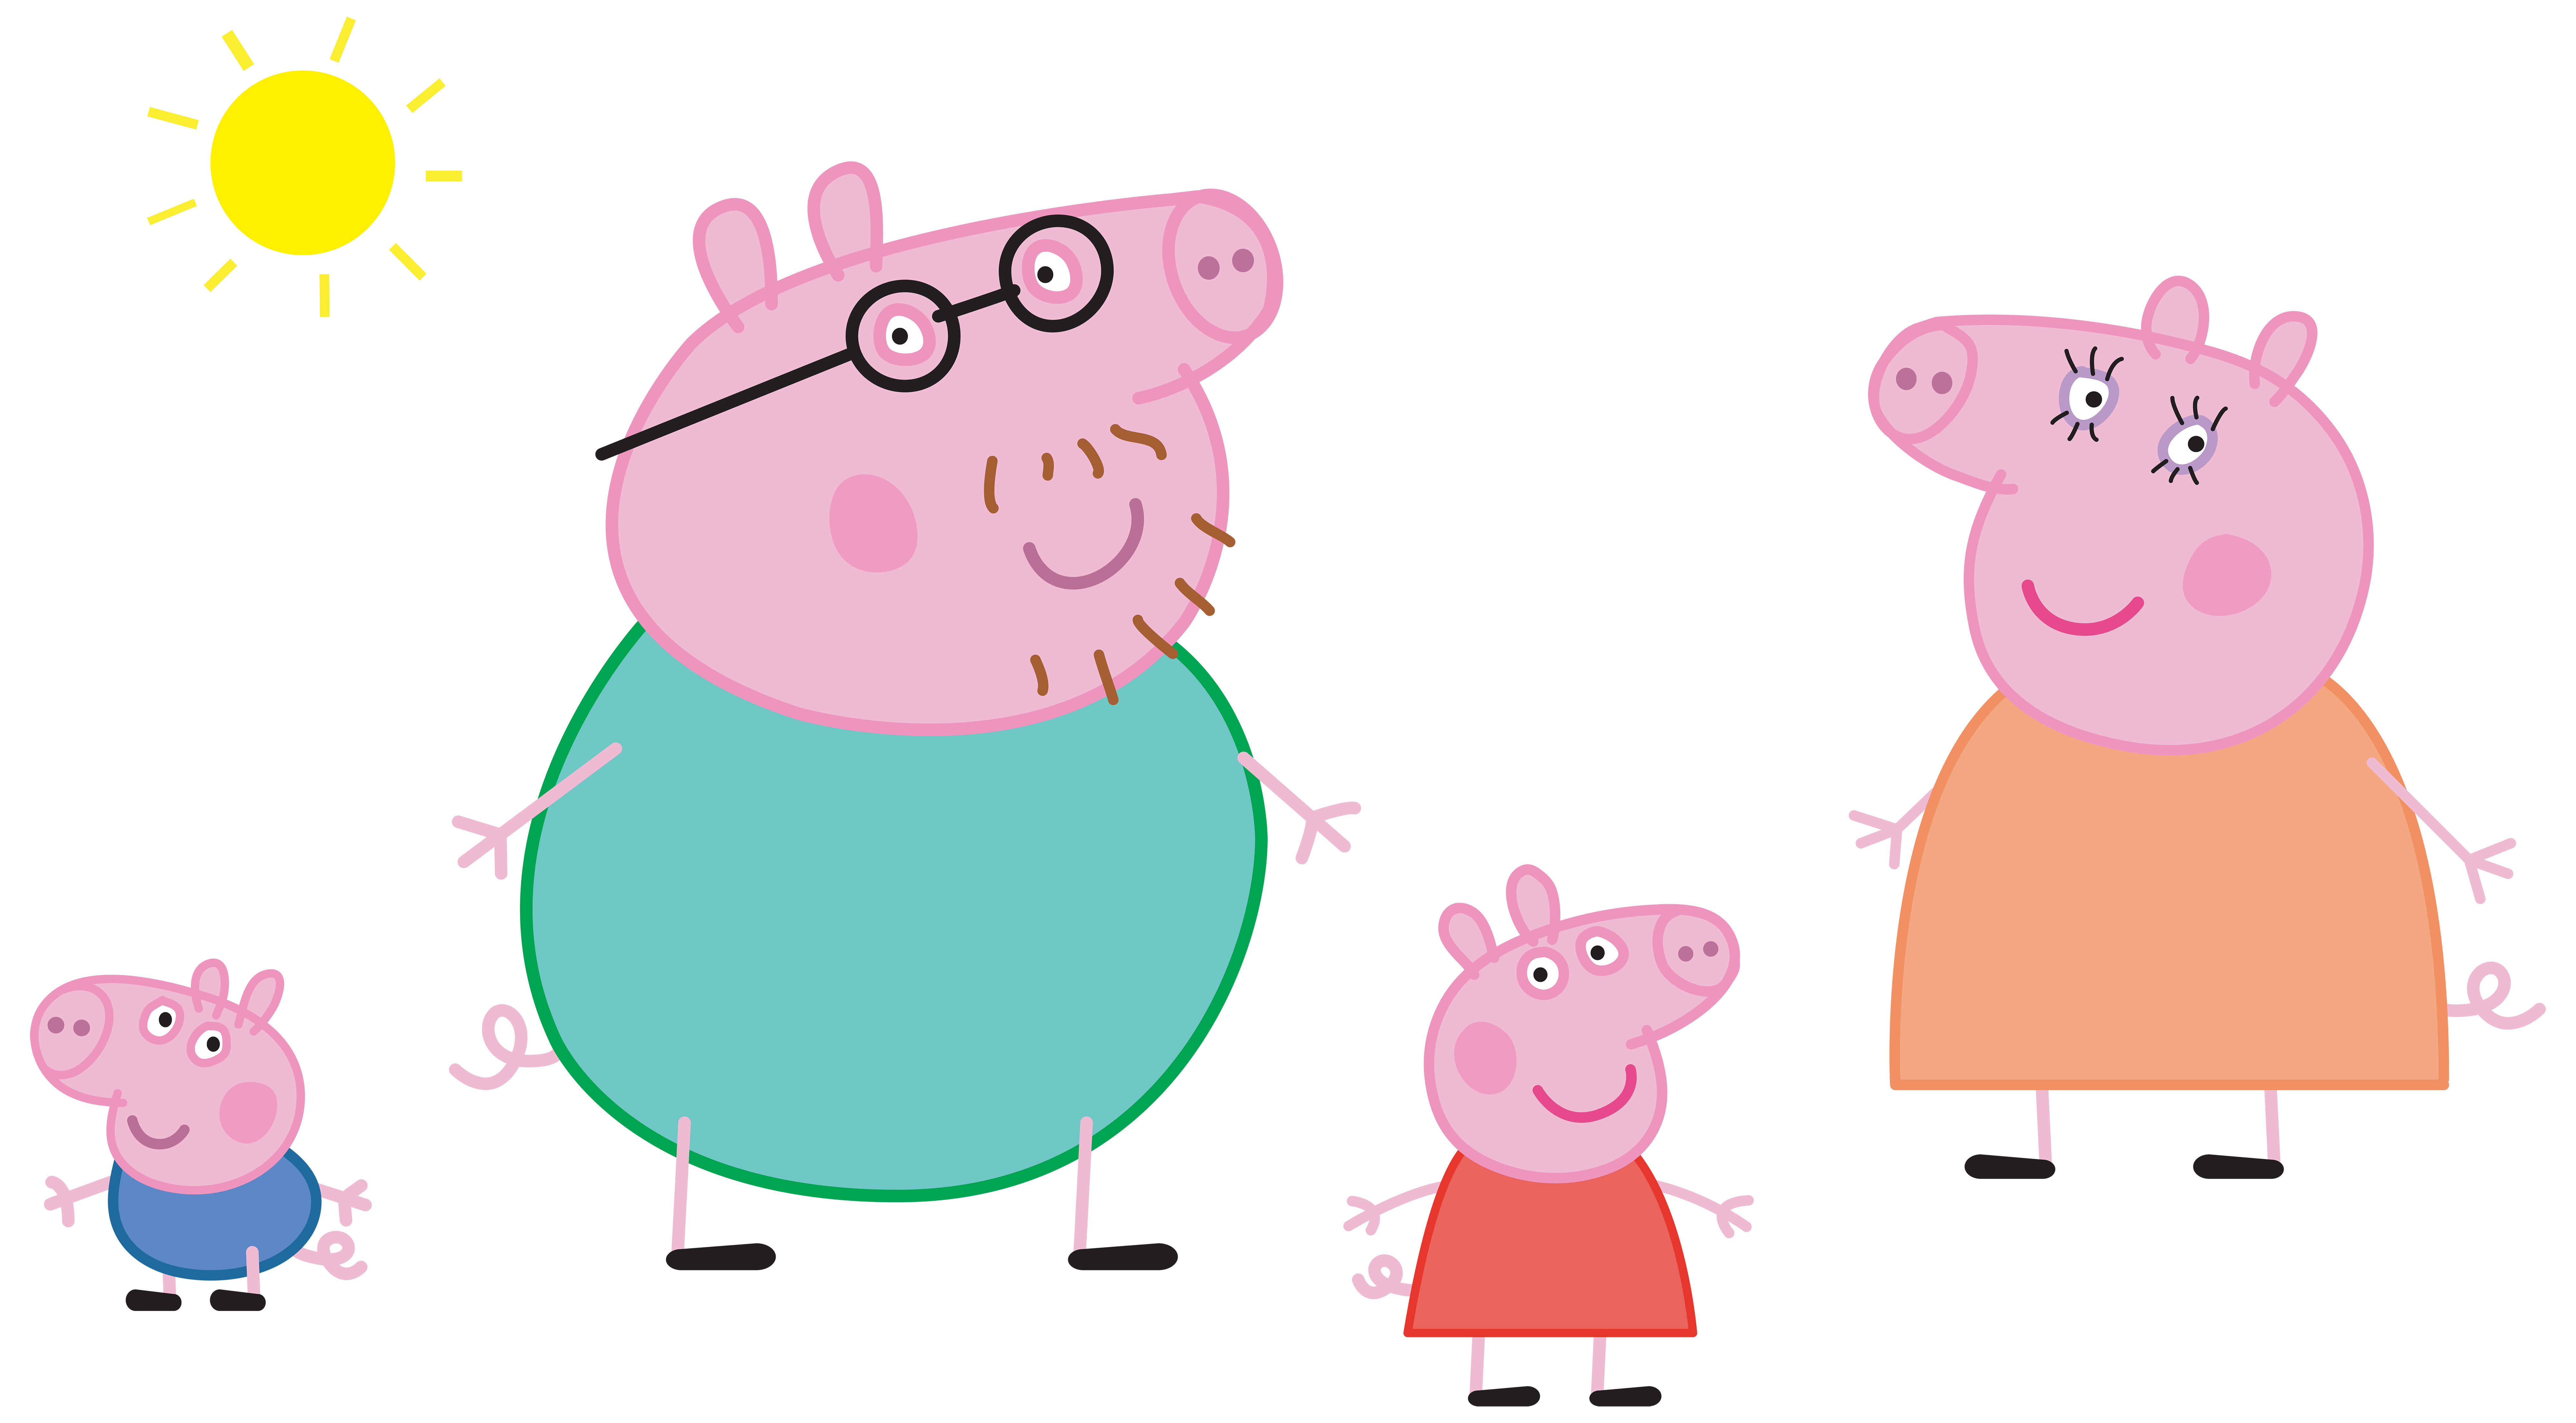 Hunting clipart family. Peppa pig logo transparent